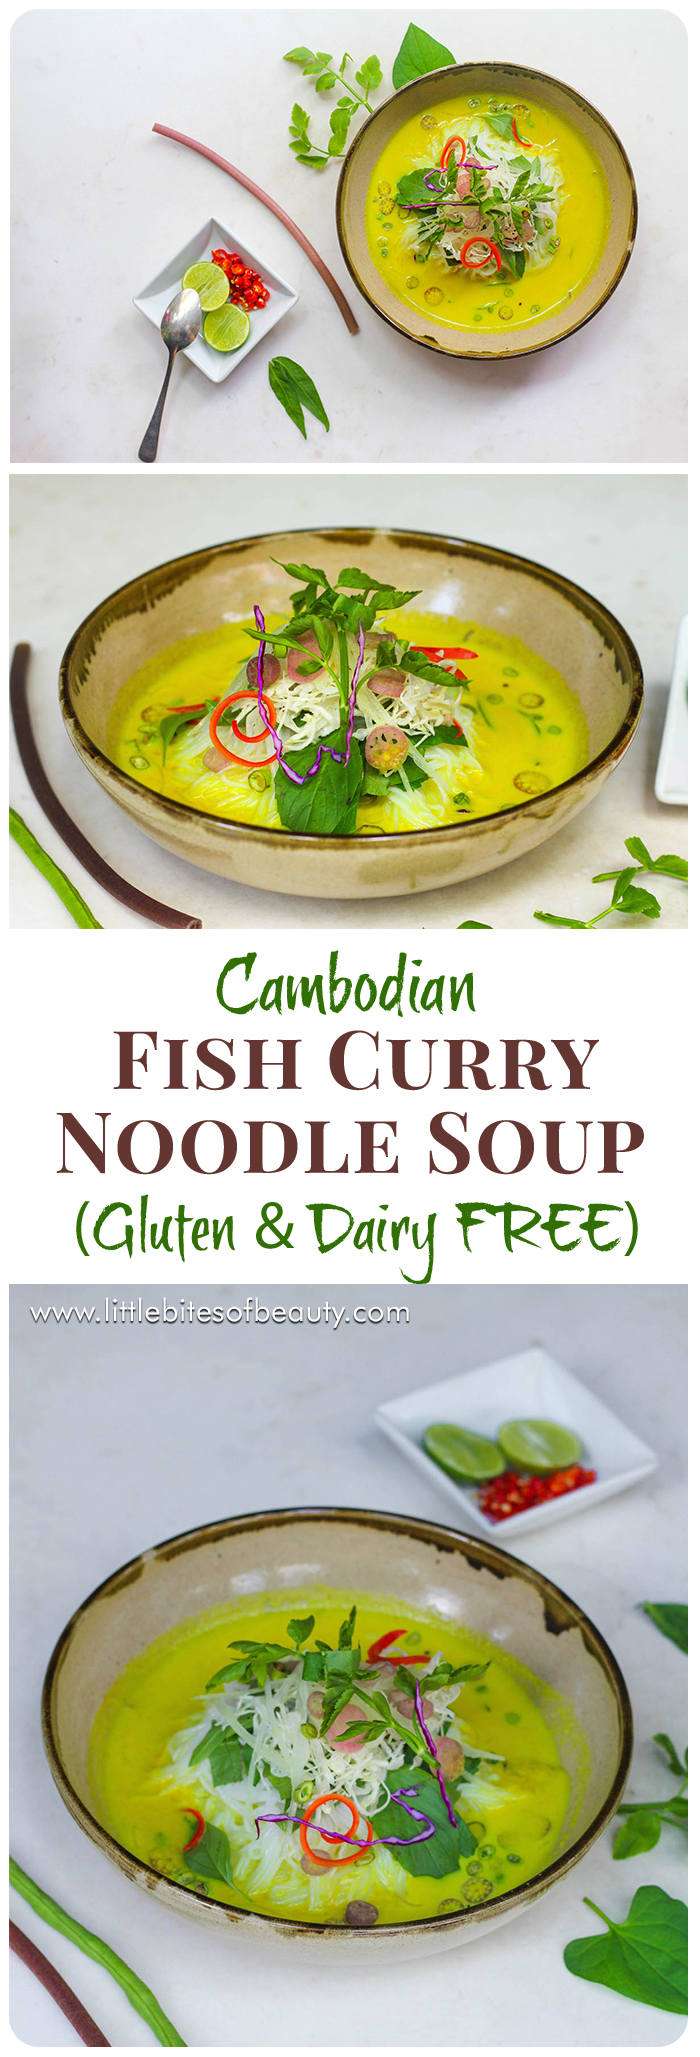 Cambodian Fish Curry Noodle Soup (Gluten & Dairy FREE)